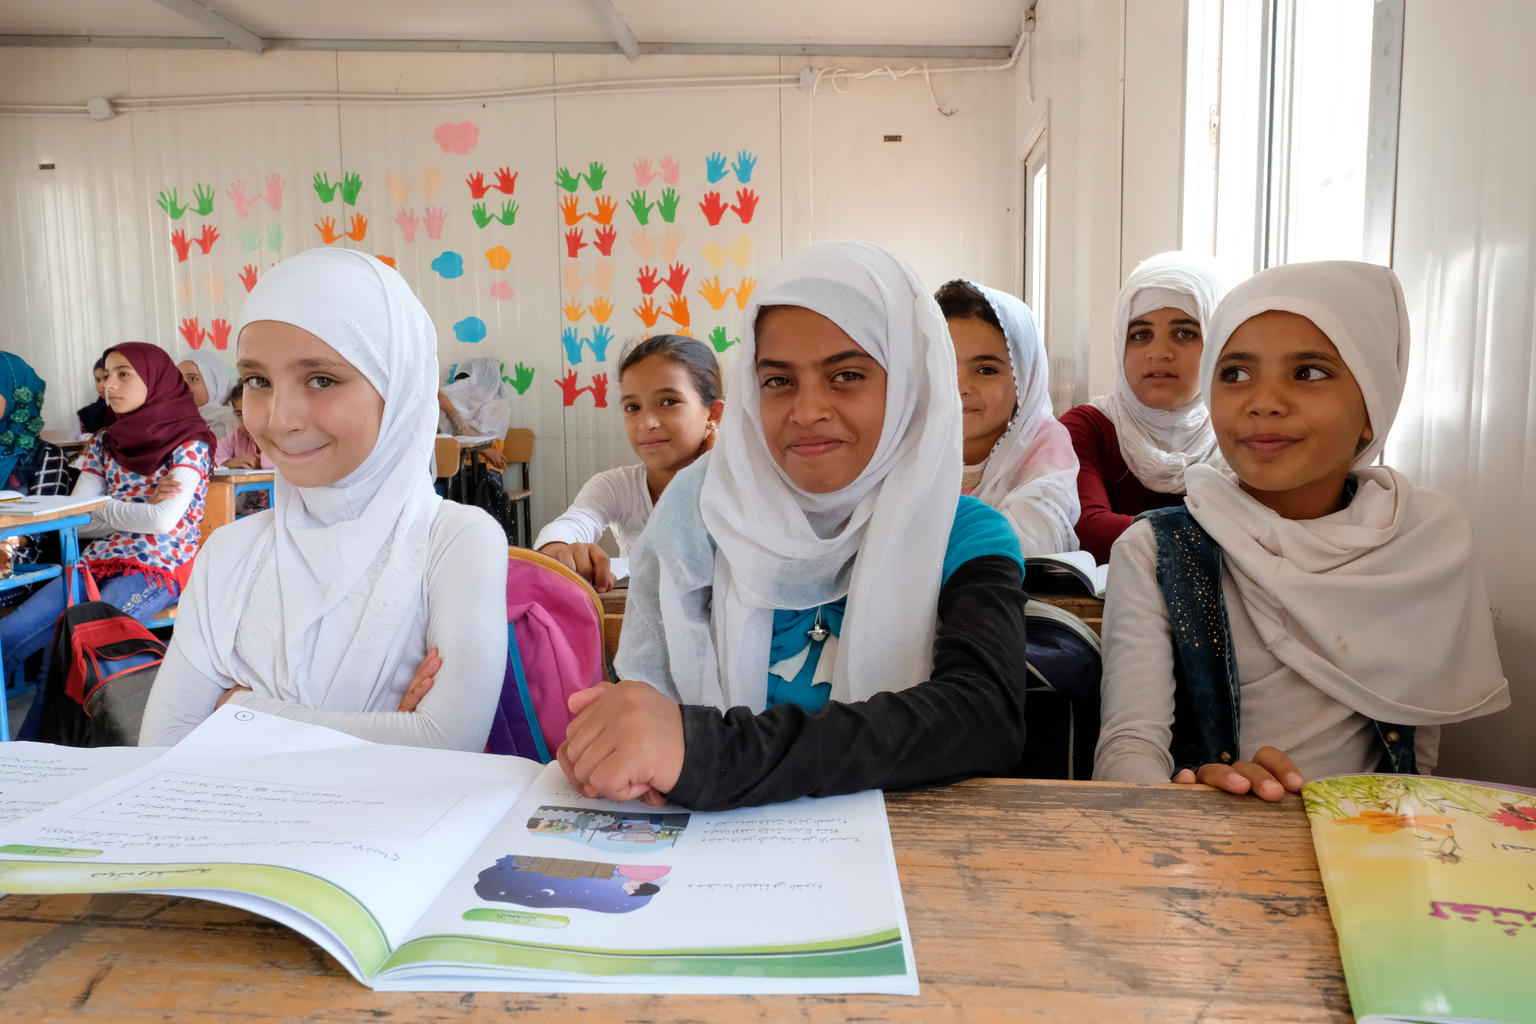 On 11 September 2017, Syrian refugee students in the fourth grade smile during a visit by UNICEF Goodwill Ambassador Priyanka Chopra to their school in Za'atari refugee camp, Mafraq Governorate, Jordan.